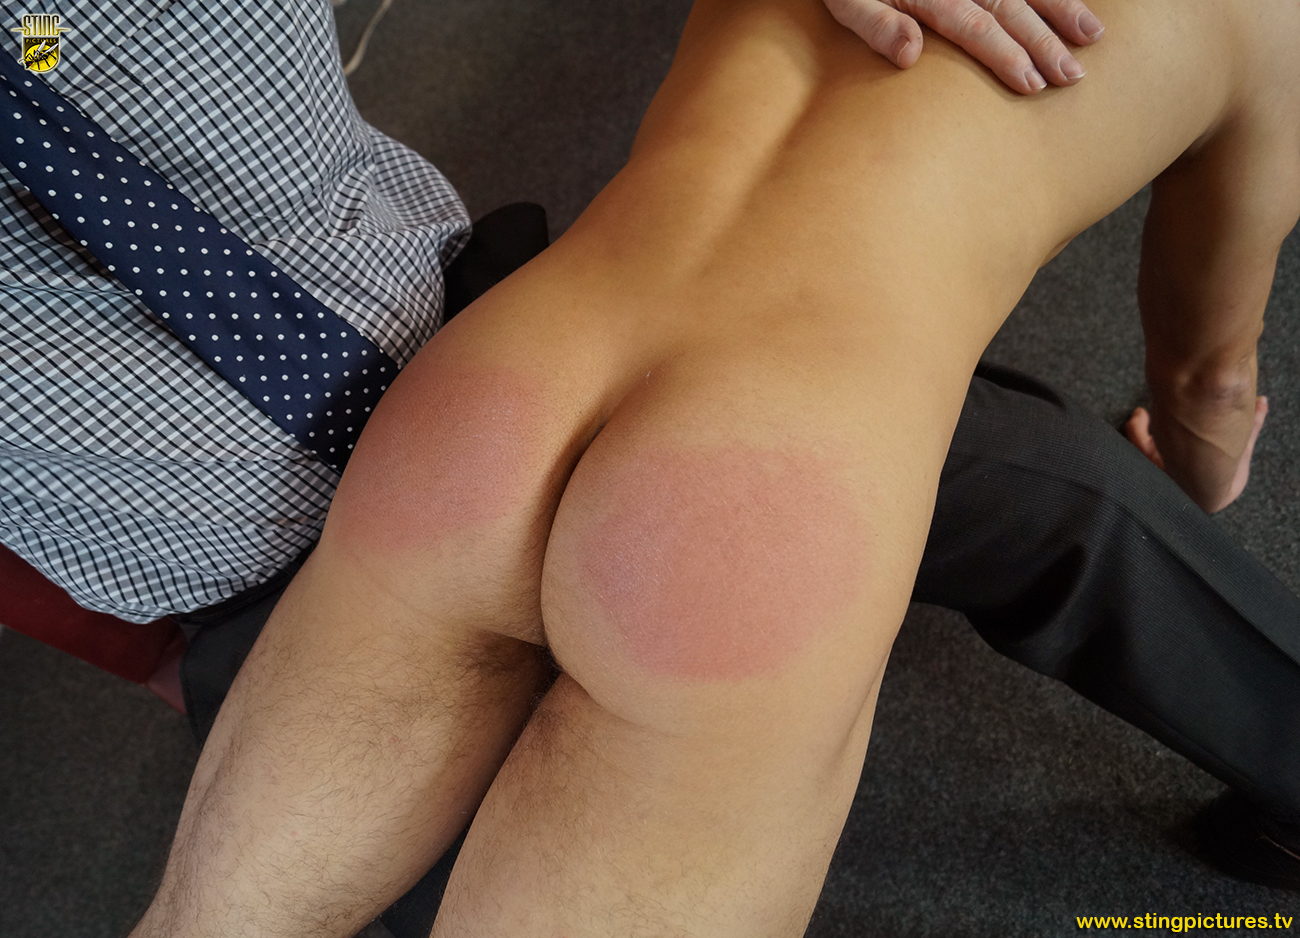 Spanking a young boys bare butt, puerto rico babes naked